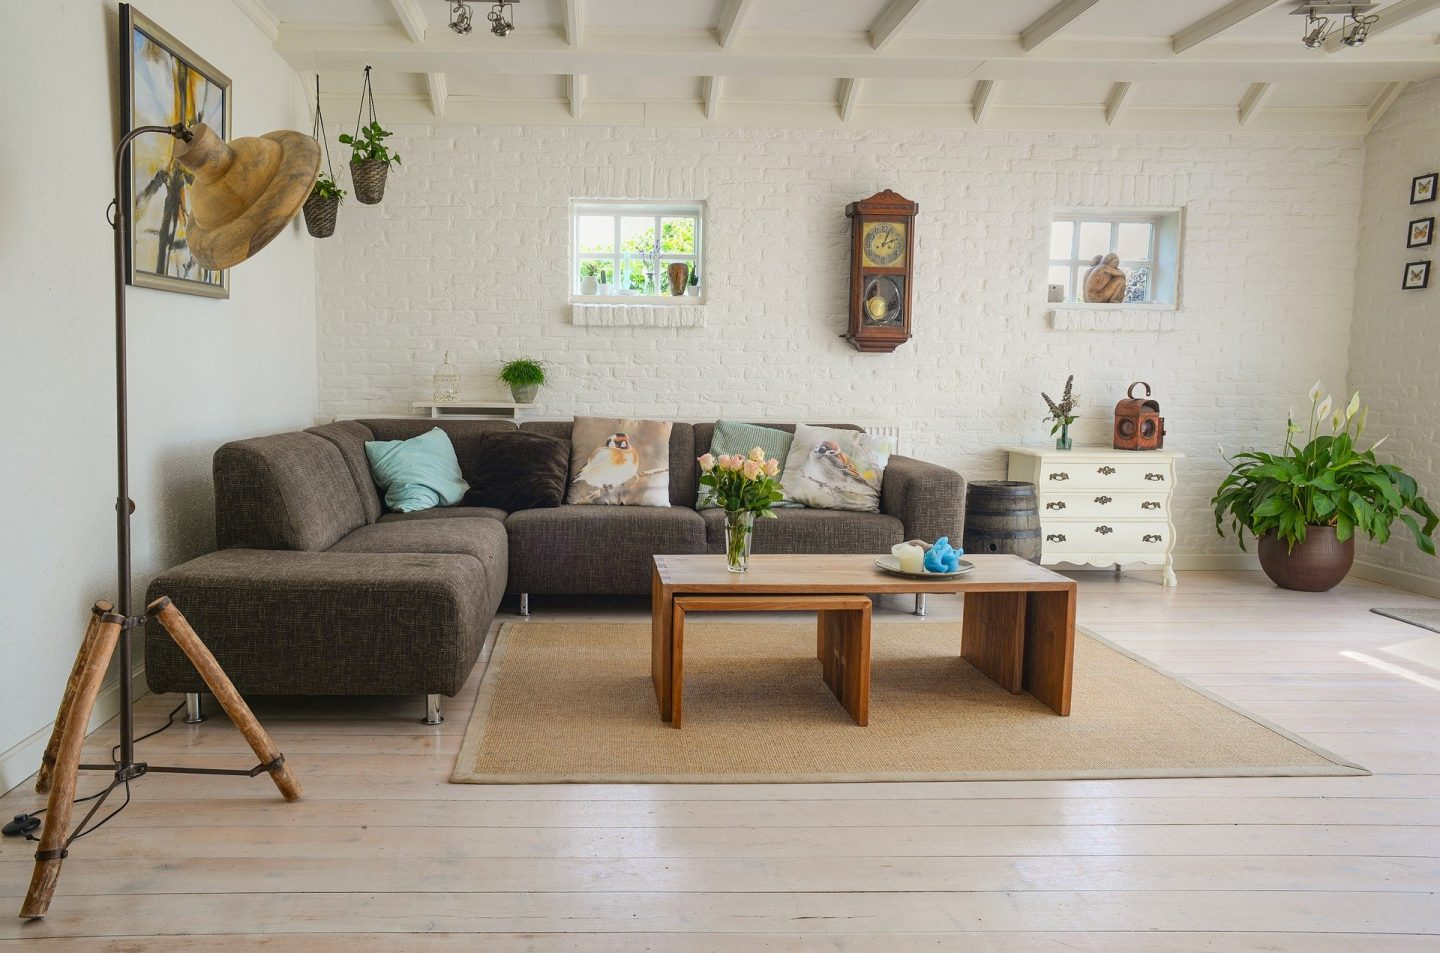 HOW A CLEAN HOME HELPS IN ACHIEVING POSITIVE MENTAL HEALTH